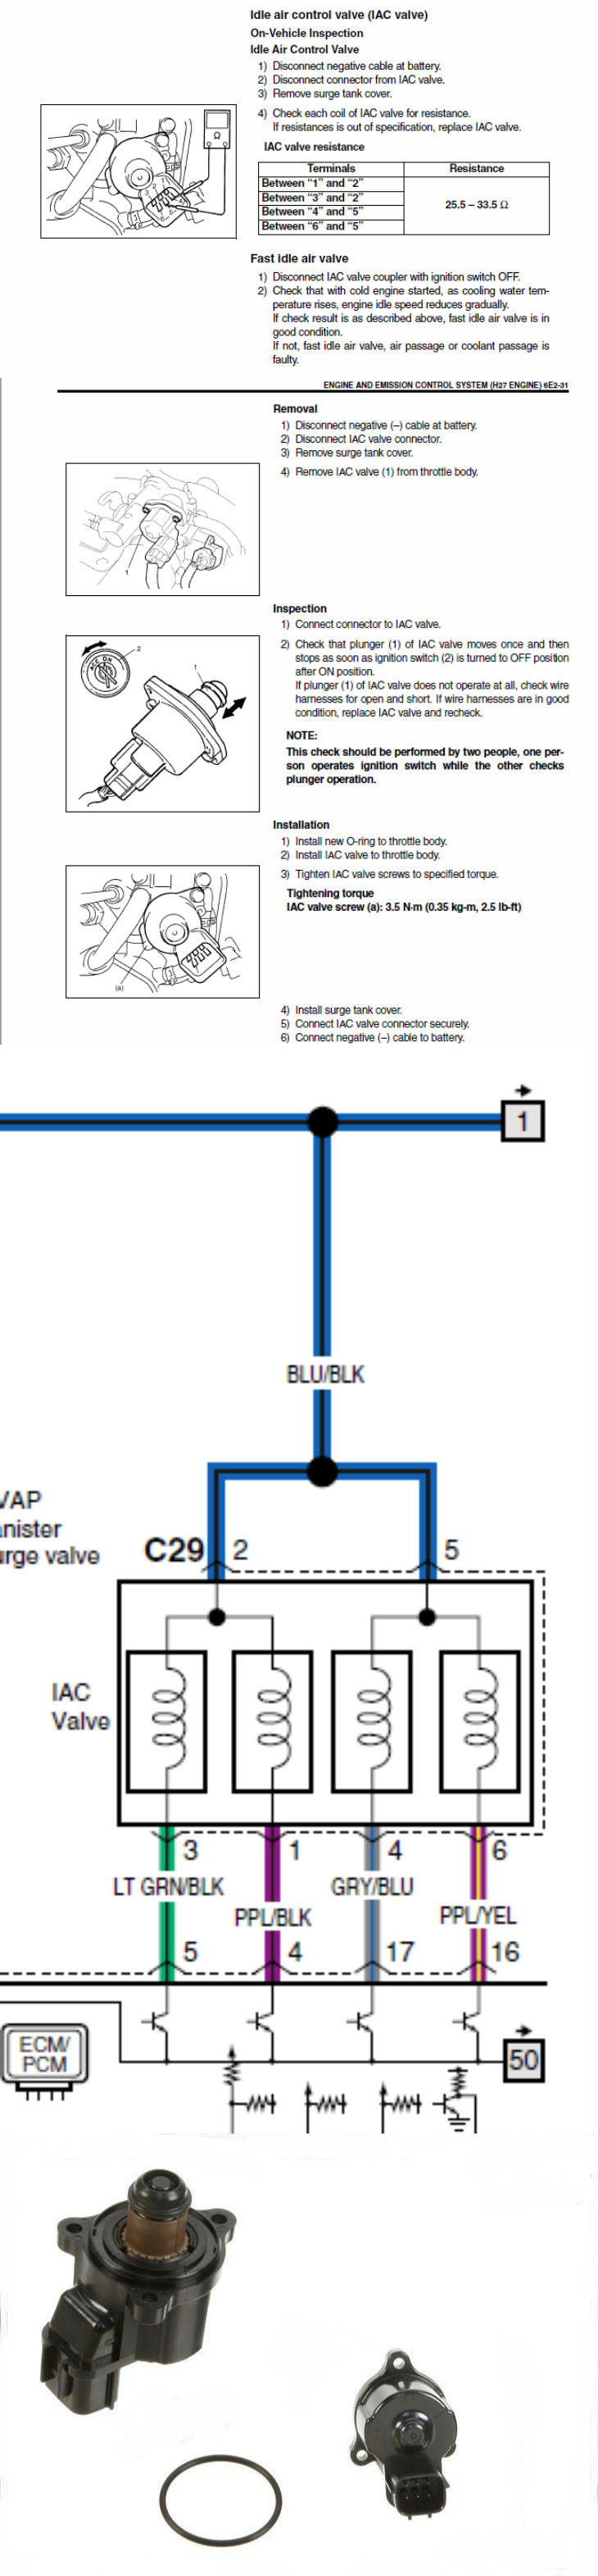 Idle Air Control Valve - Suzuki Forums: Suzuki Forum Site  Liberty Iac Wiring Diagram on iac connector diagram, iac sensor, iac parts diagram,